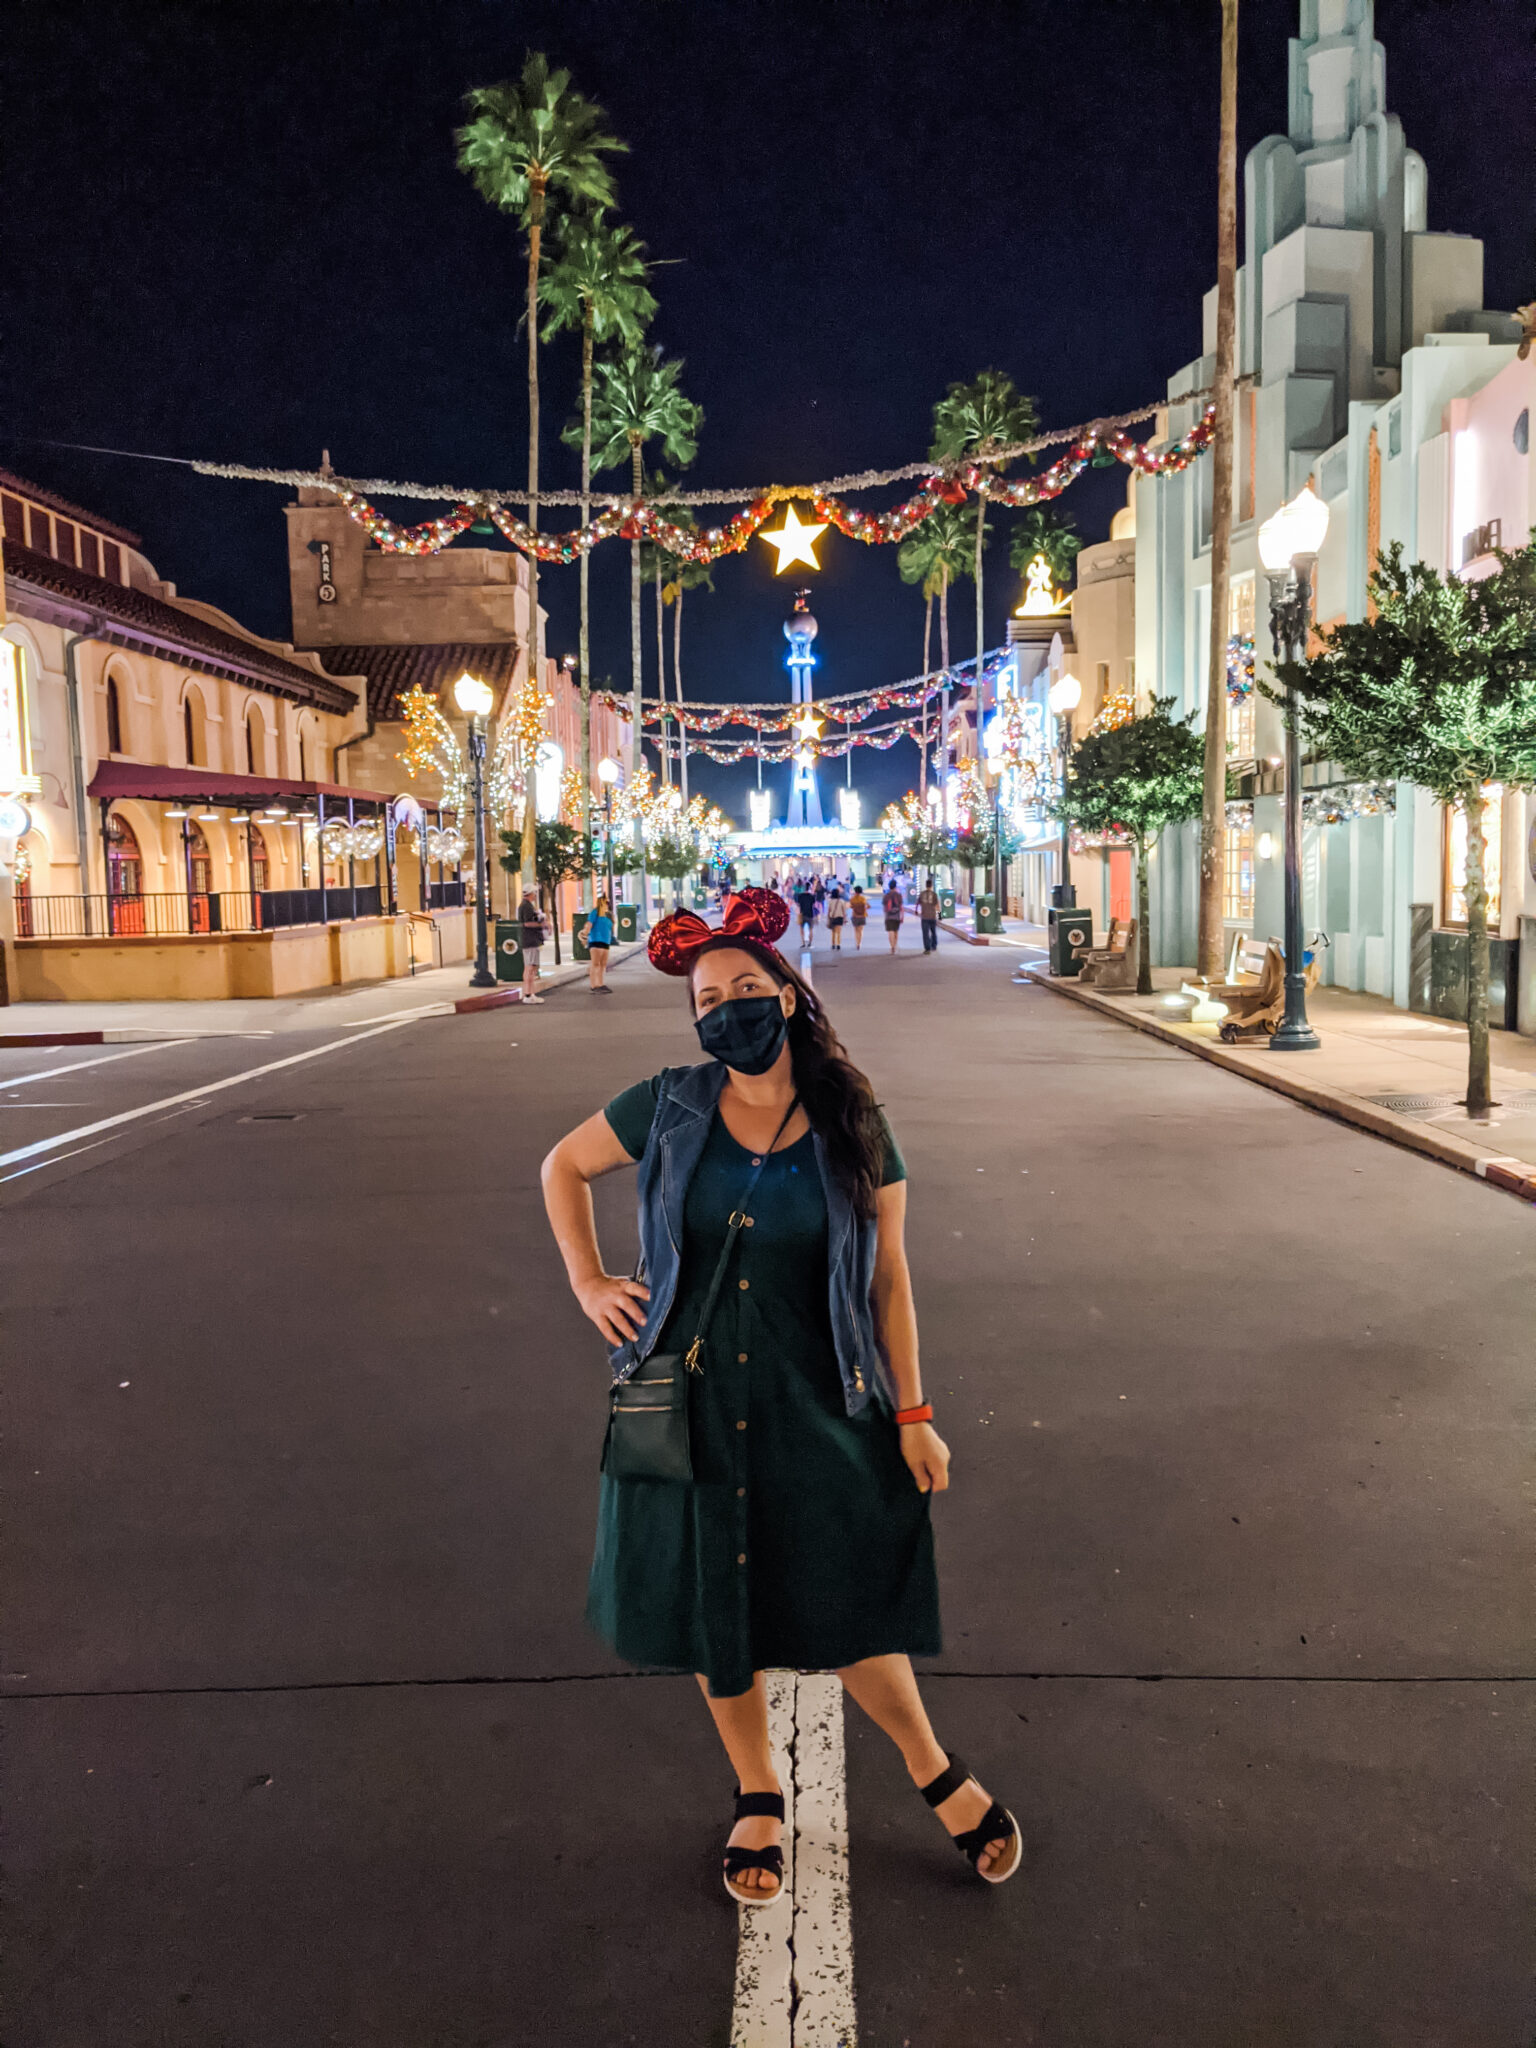 Creative Pictures to Take at Disney World While Wearing a Mask All Things with Purpose Sarah Lemp